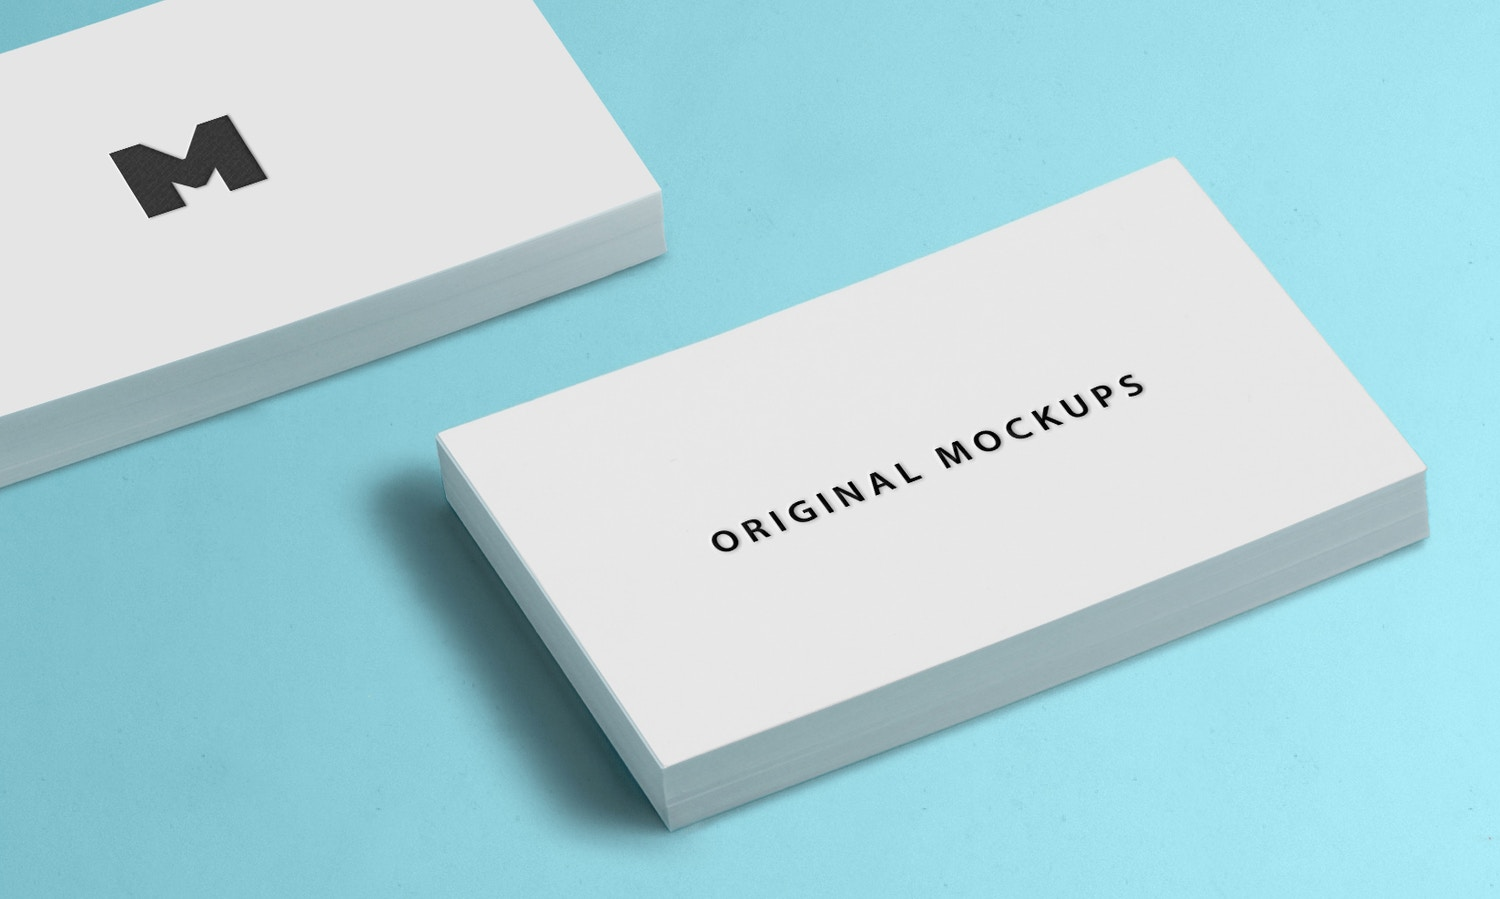 Business Card Mockup 03 by Original Mockups on Original Mockups